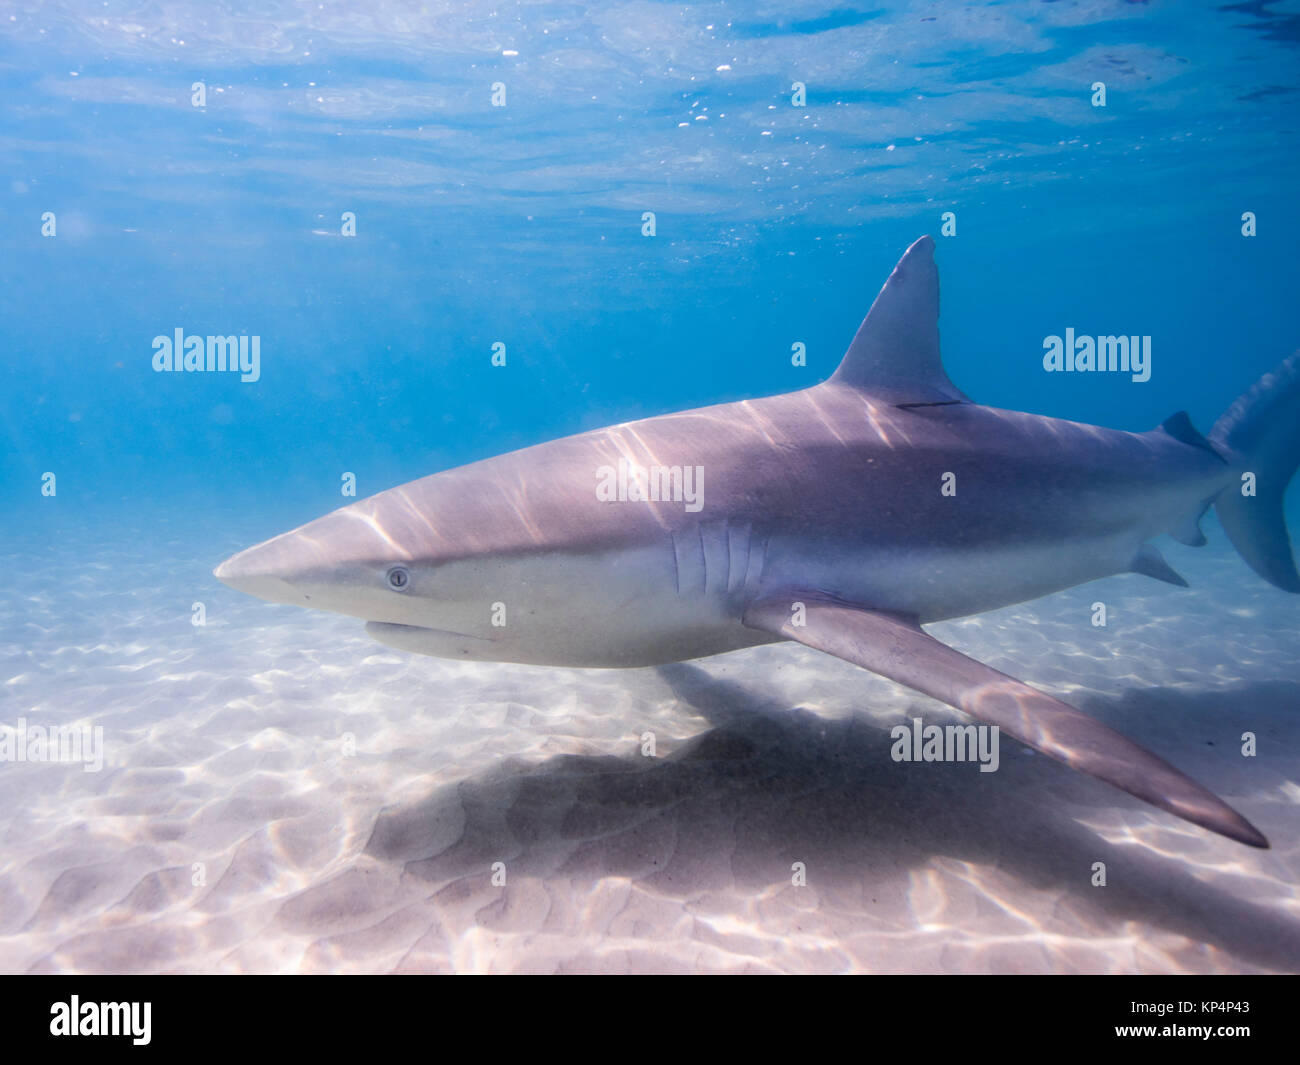 Dusky shark (Carcharhinus obscurus) a species of requiem shark, in the family Carcharhinidae, occurring in tropical - Stock Image